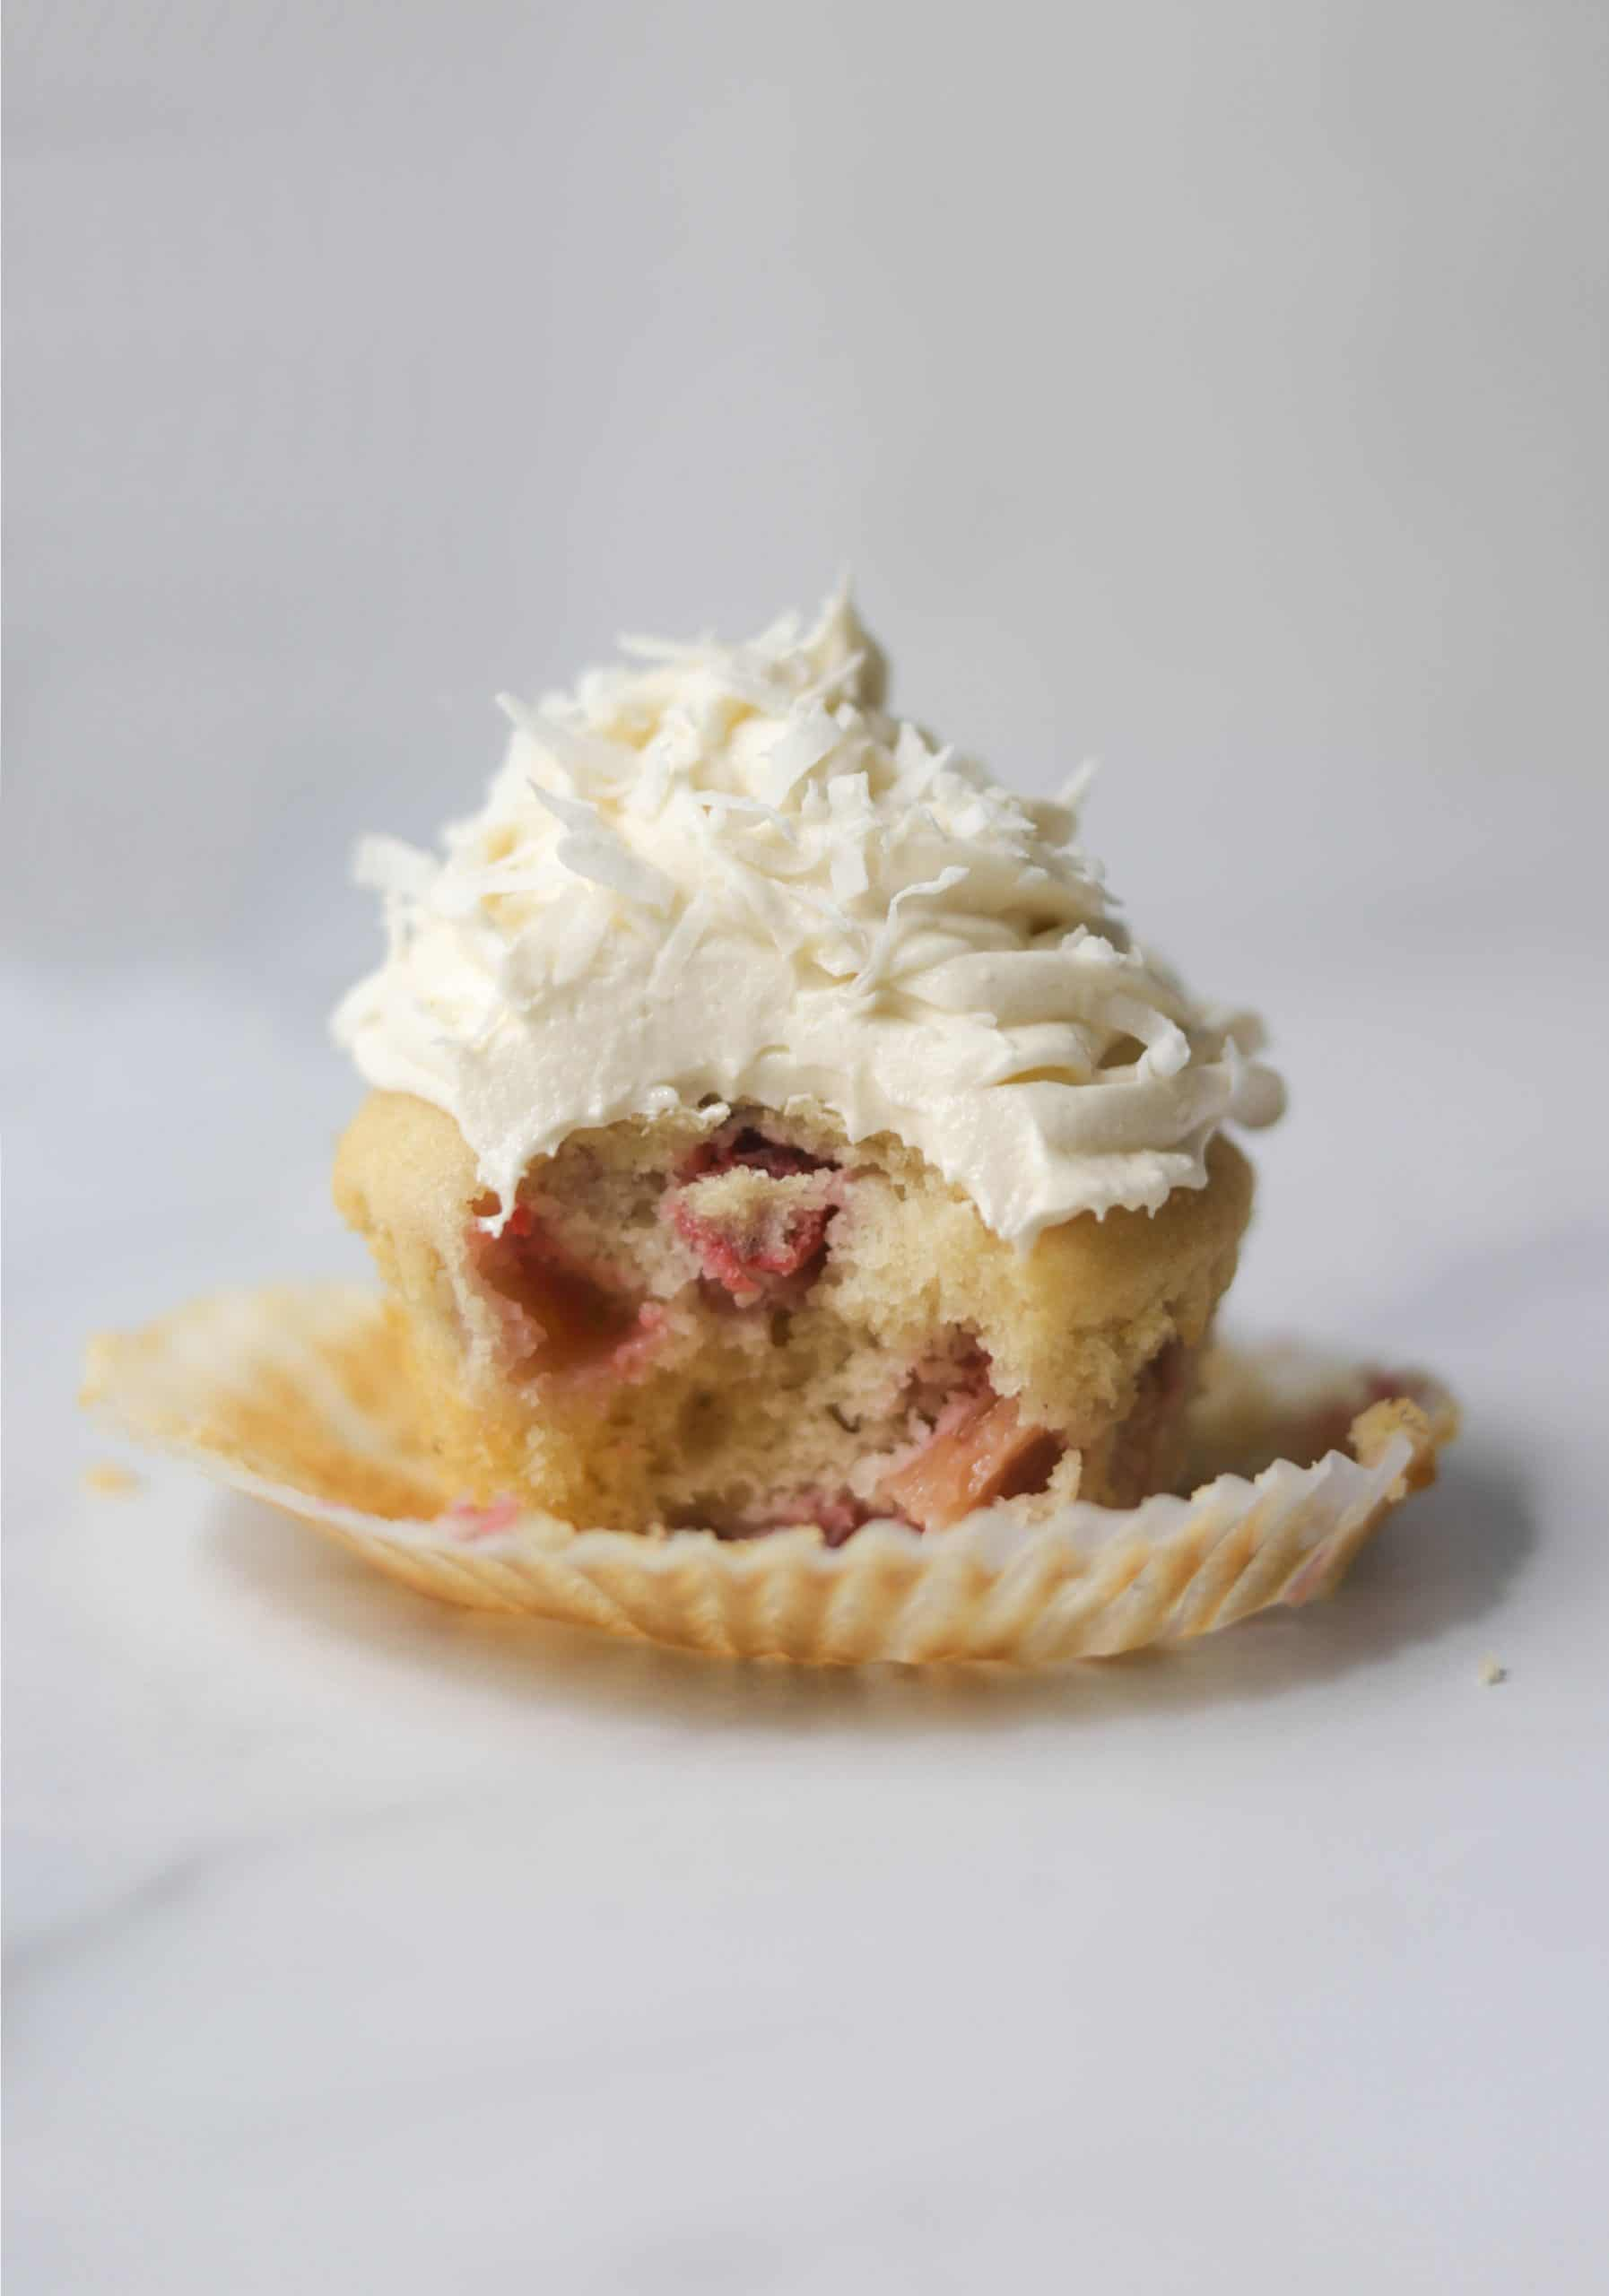 A marble board with one strawberry rhubarb cupcake with a bite out of it.